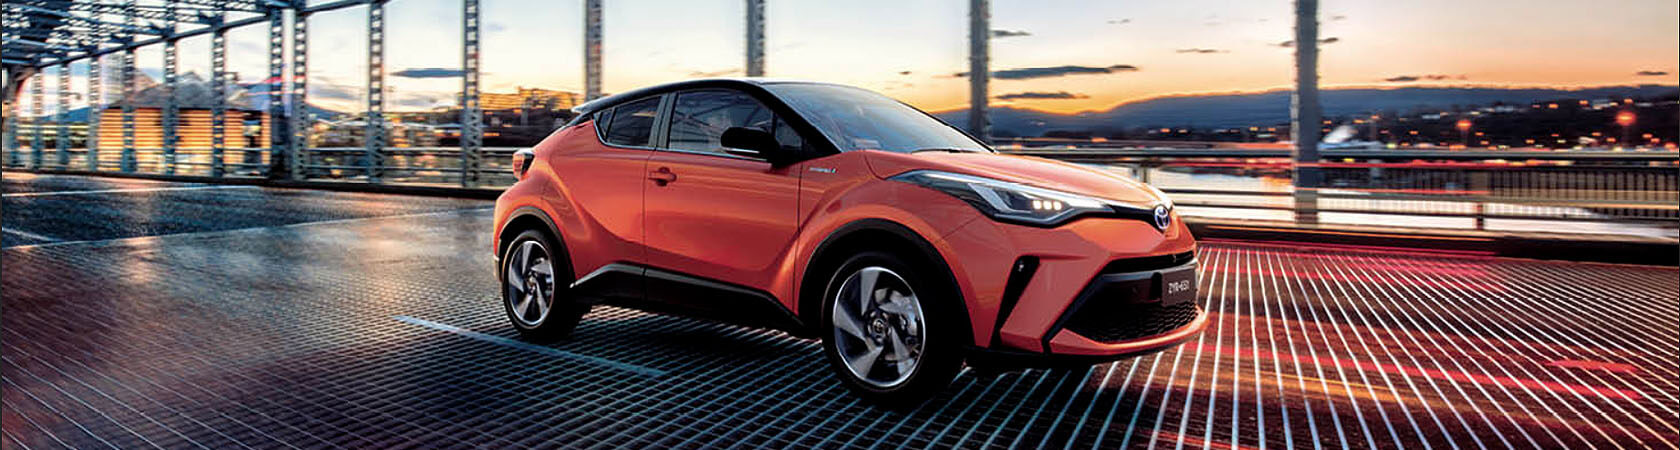 Turnbull Toyota C-HR